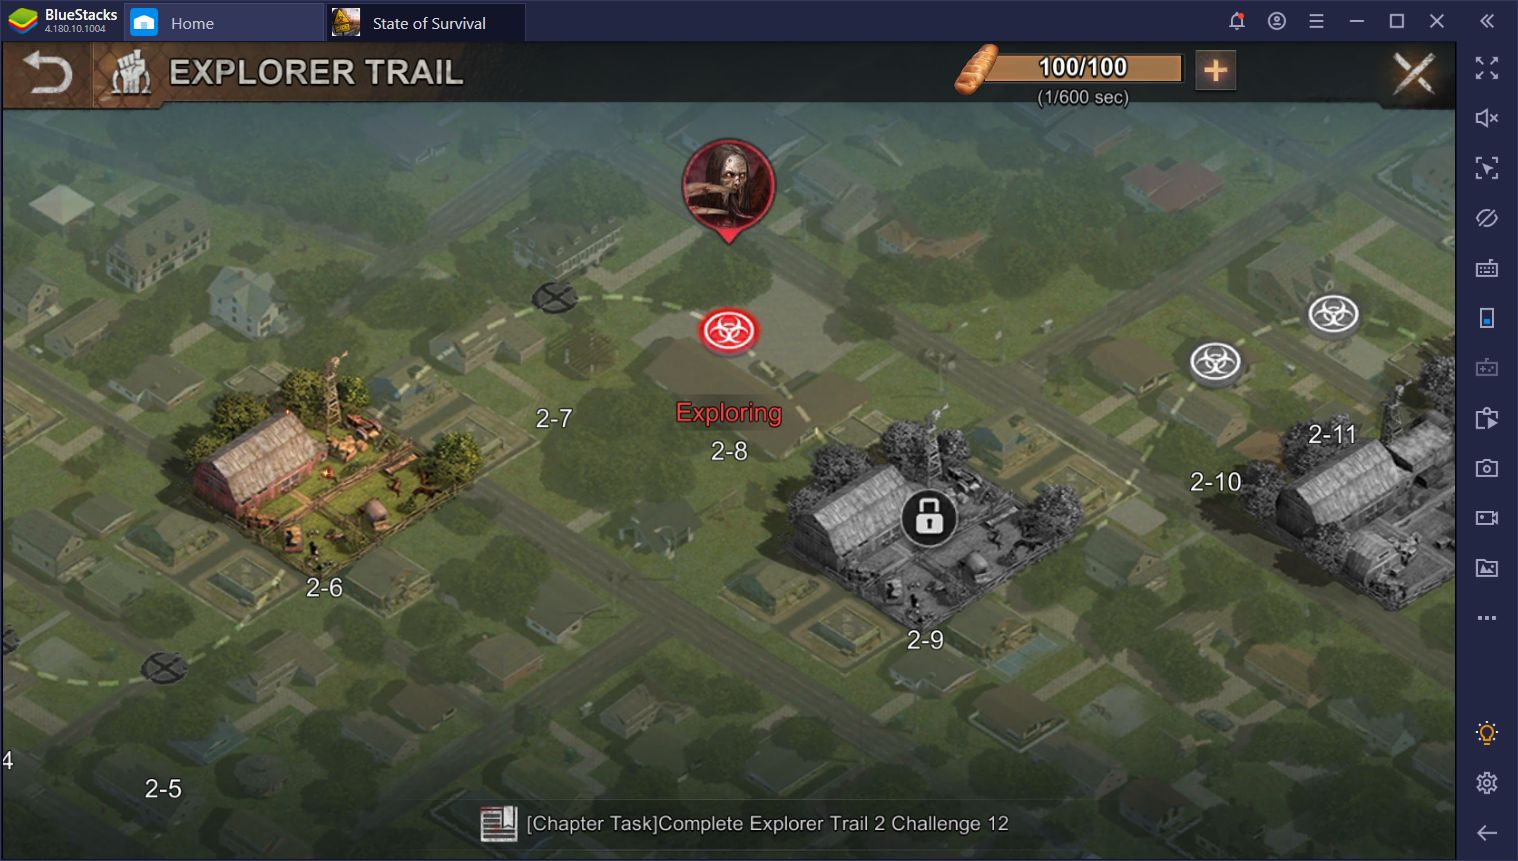 State of Survival - Guide for Winning in the Explorer Trail